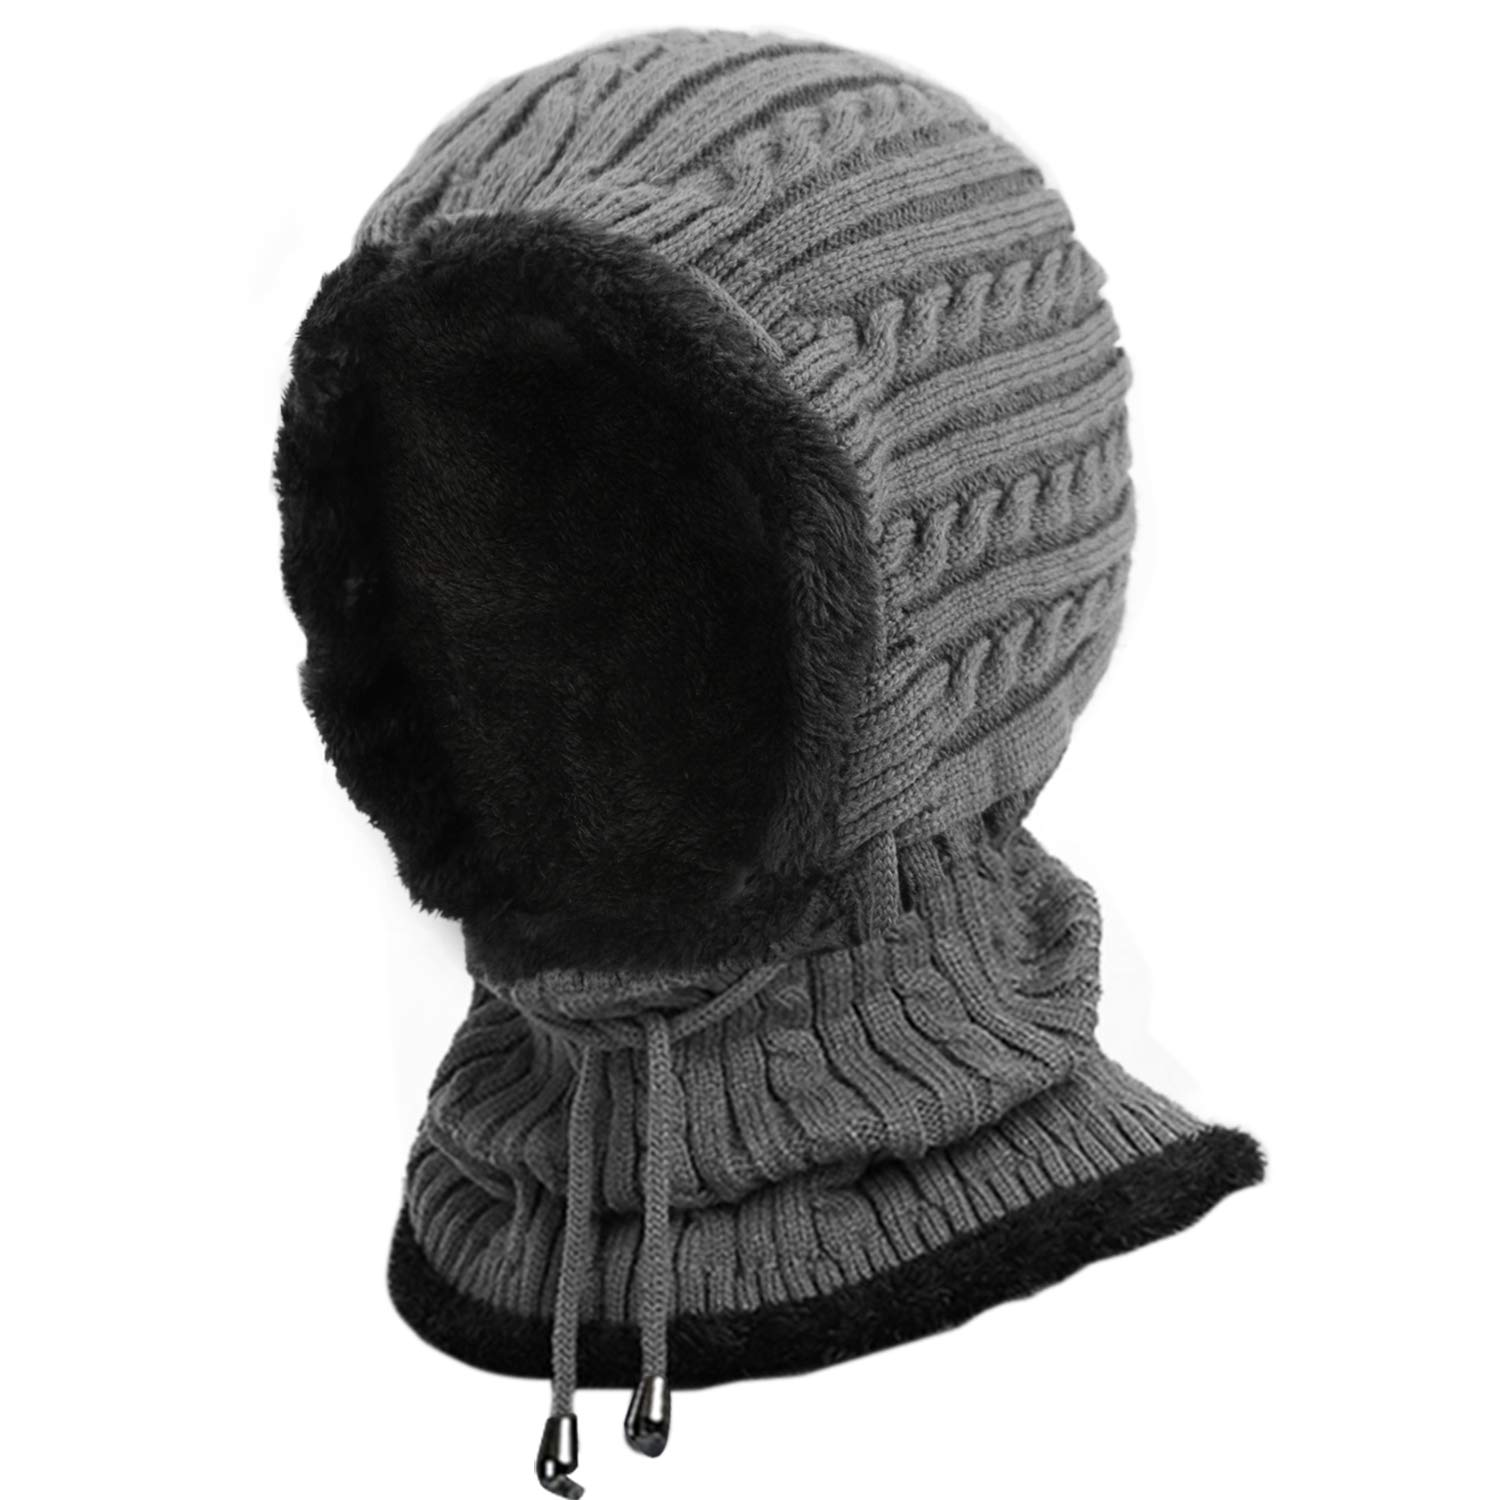 3811fb771e6 Best Rated in Men s Novelty Beanies   Knit Hats   Helpful Customer ...